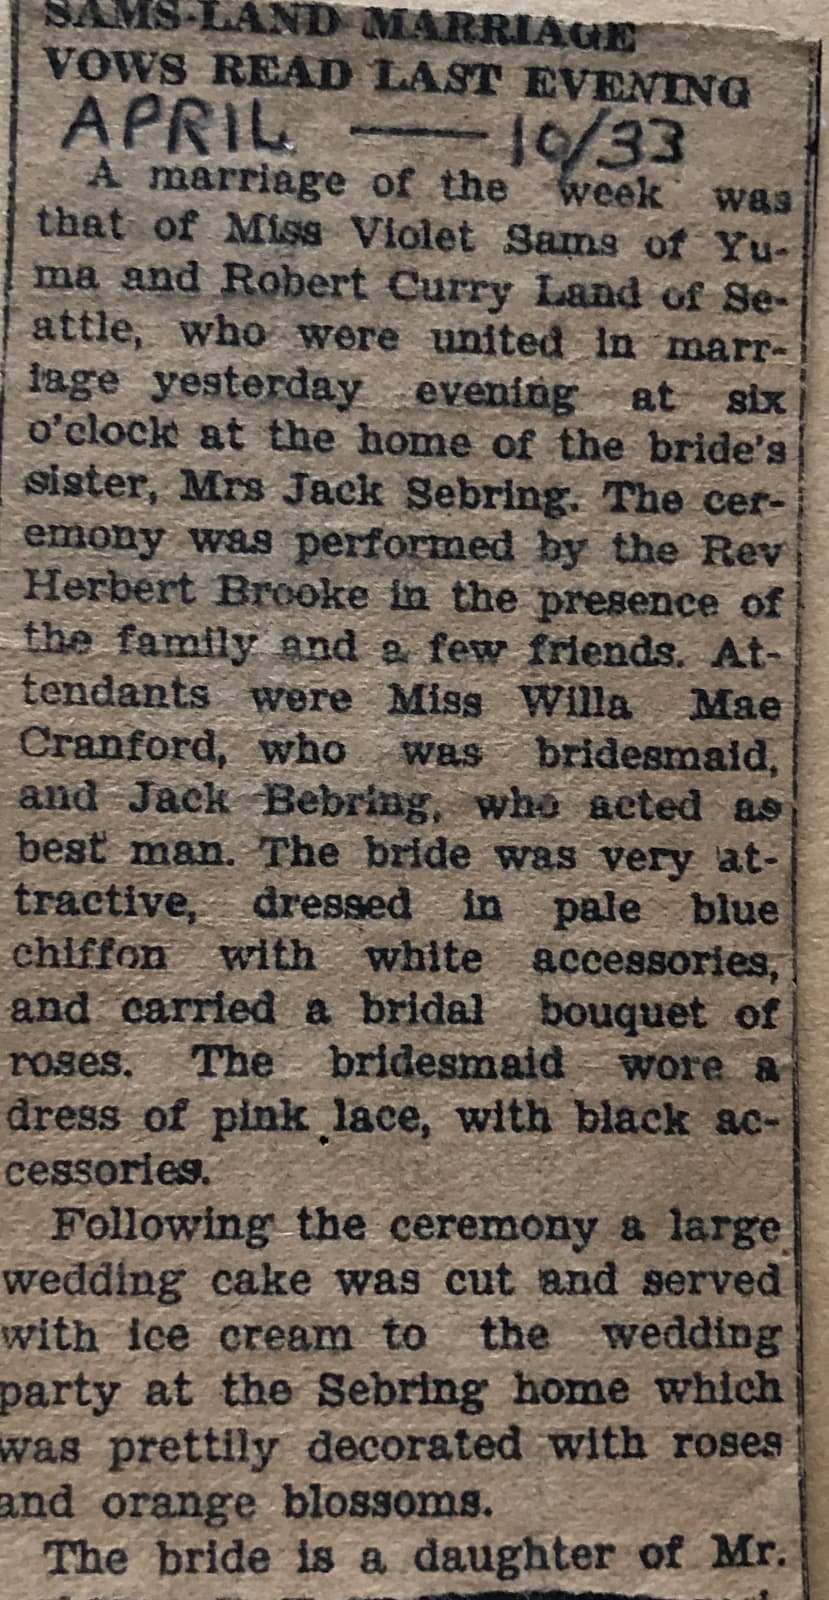 Bob and Vi's wedding announcement, April 1933.